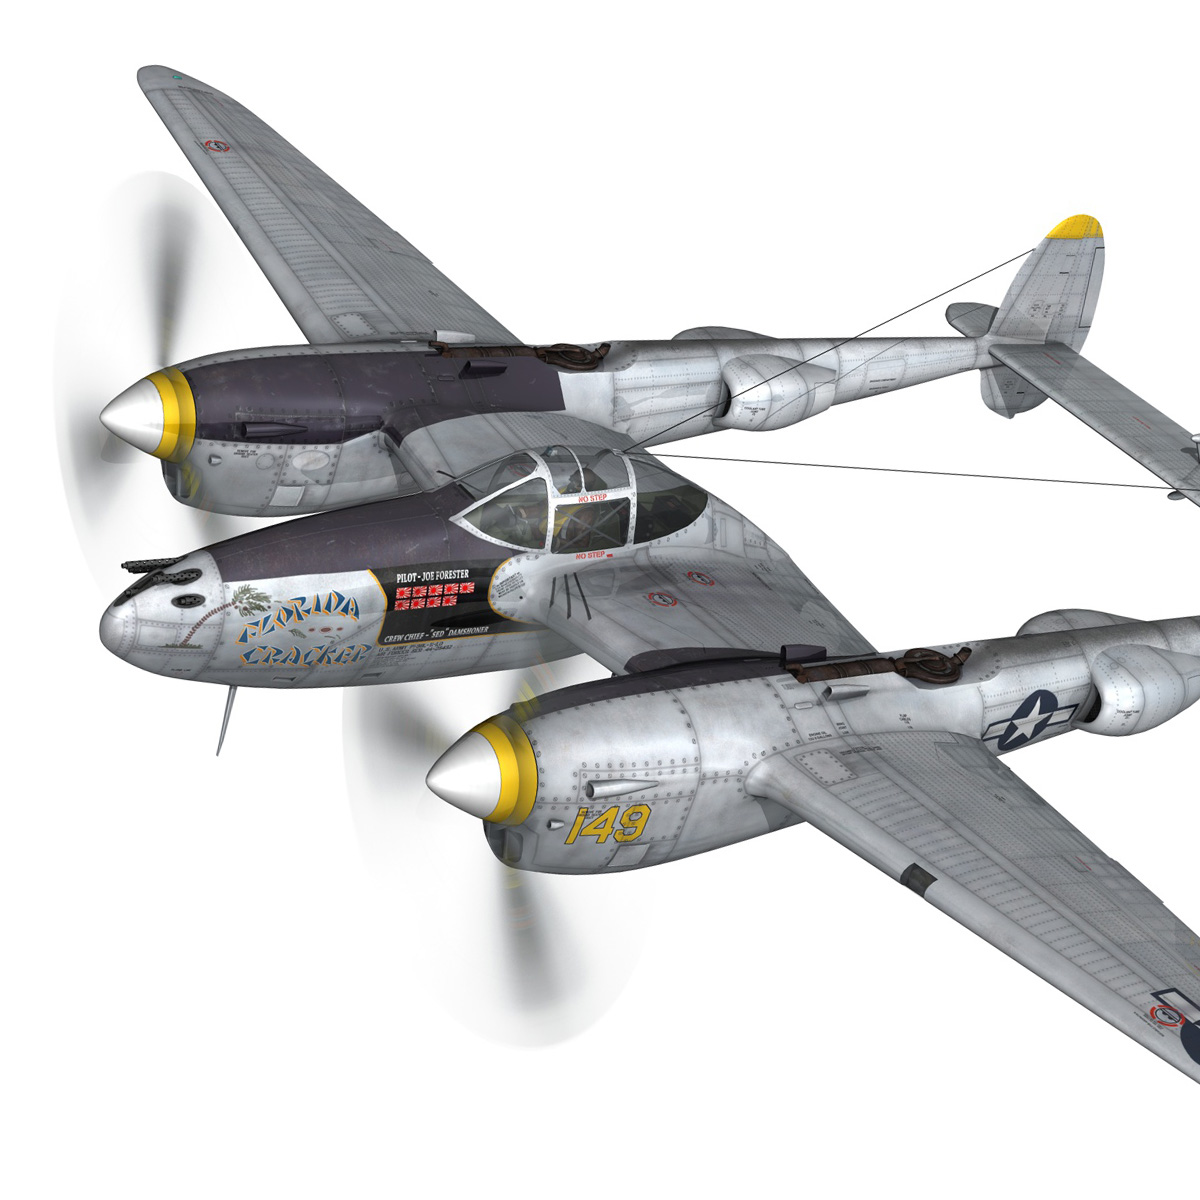 lockheed p-38 lightning – florida cracker 3d model fbx c4d lwo obj 279415